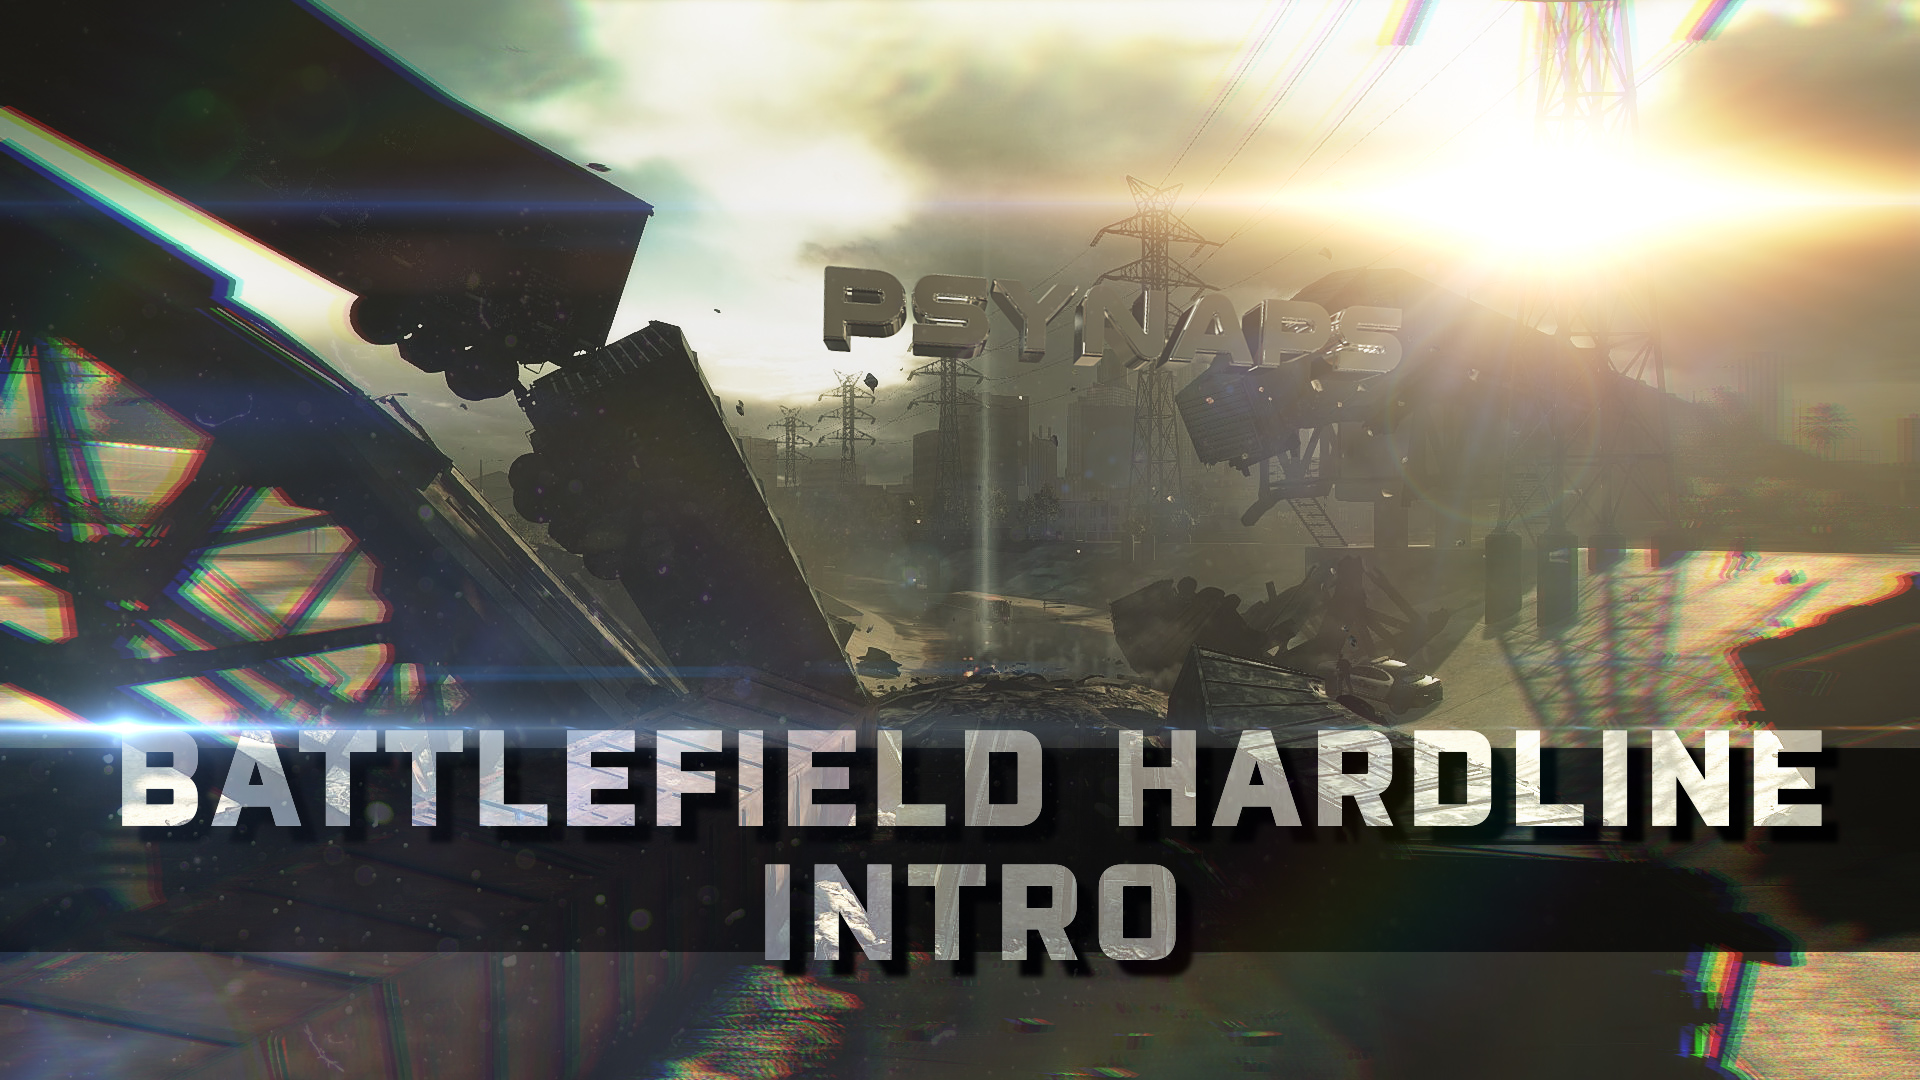 Battlefield Hardline Intro by Psynaps